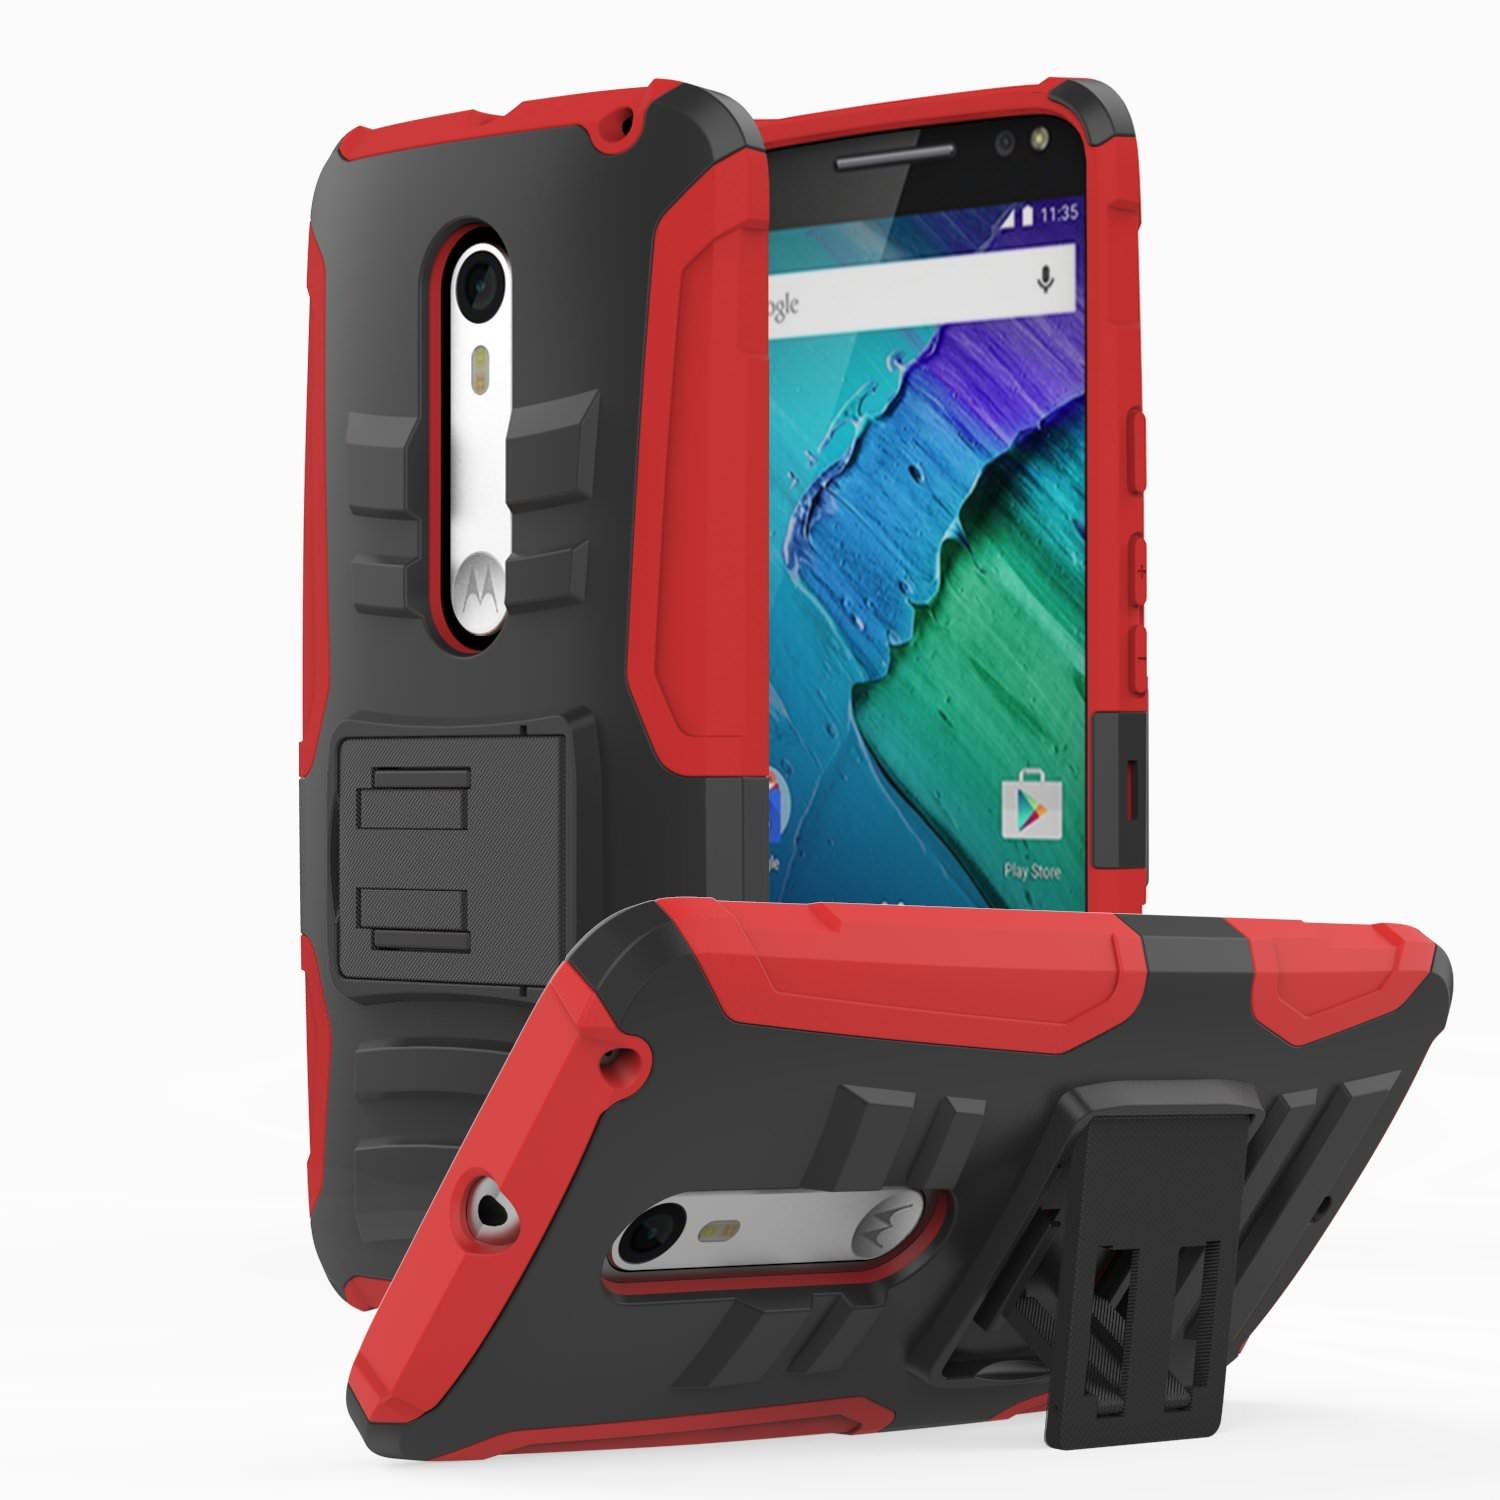 Rugged Case For Moto X Pure edition